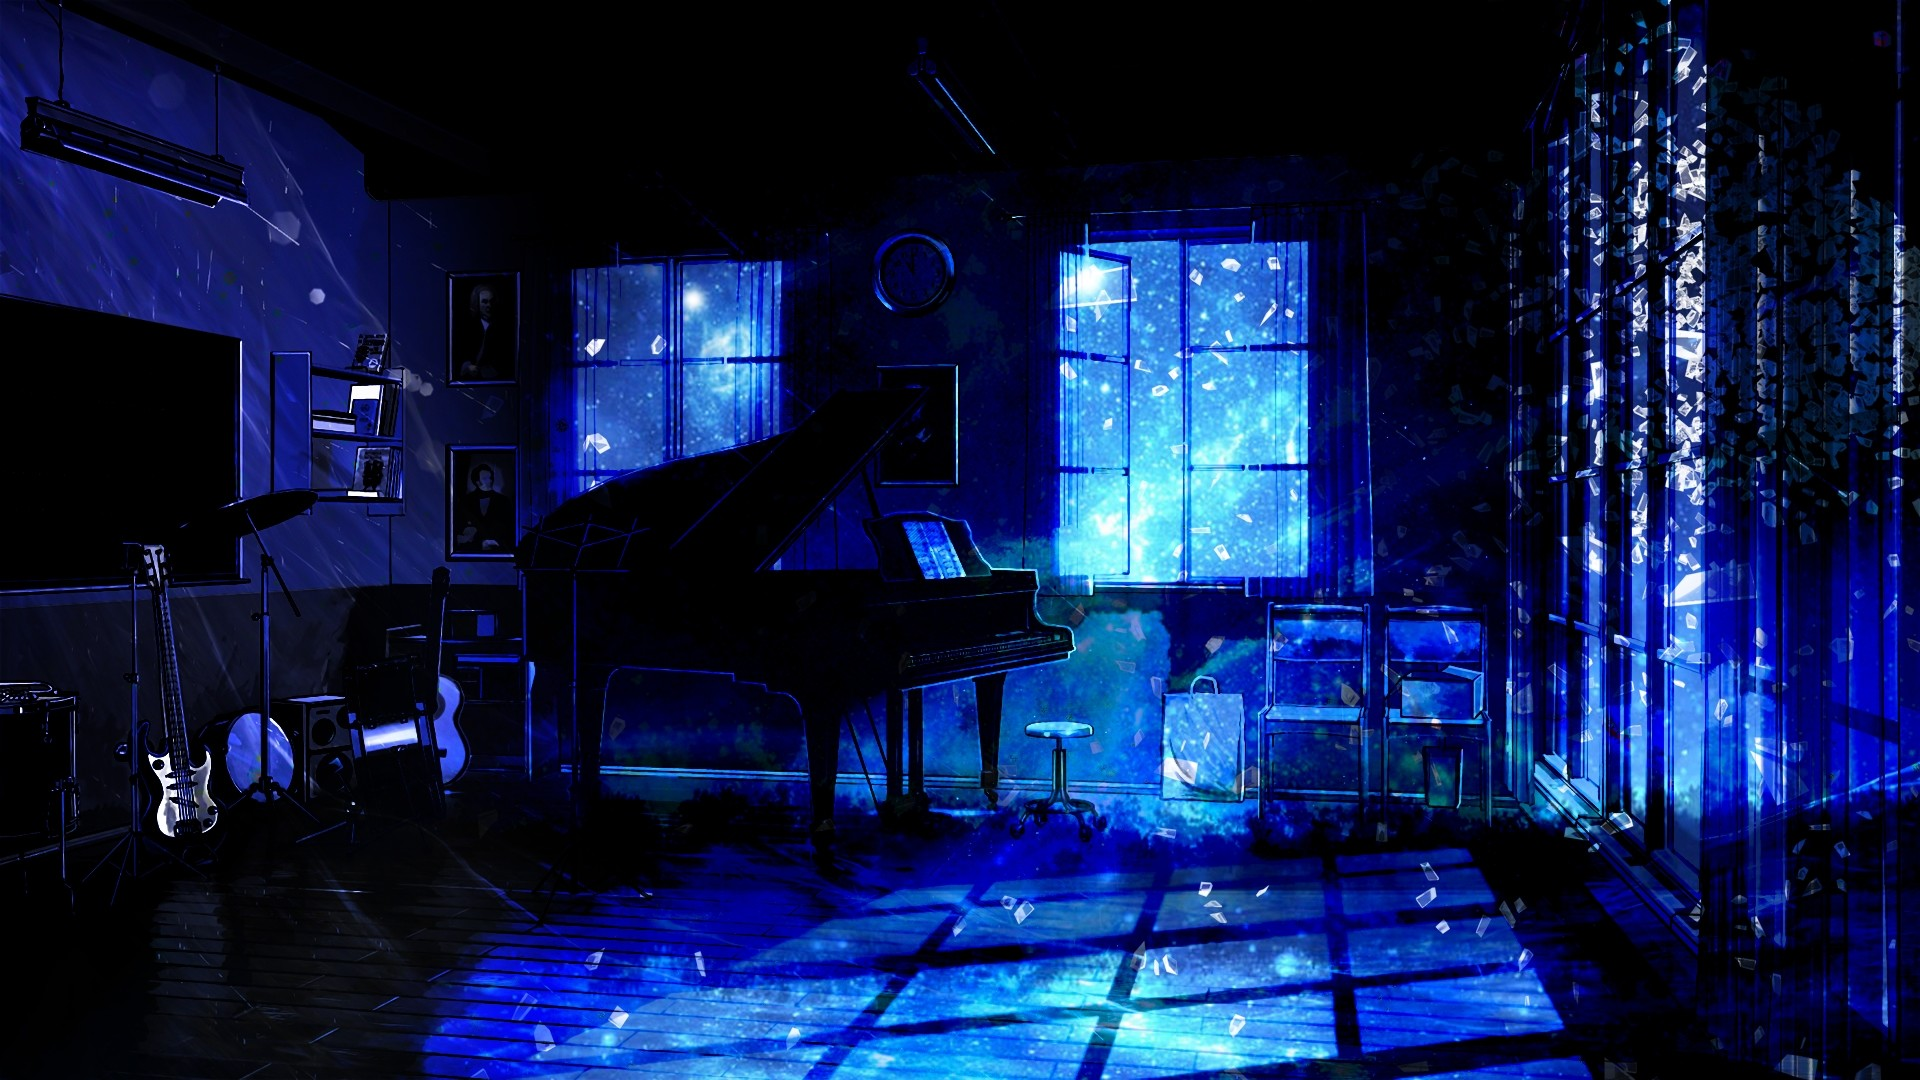 1920x1080 Downaload Music room, piano, anime, original, dark wallpaper, ,  Full HD, HDTV, FHD, 1080p